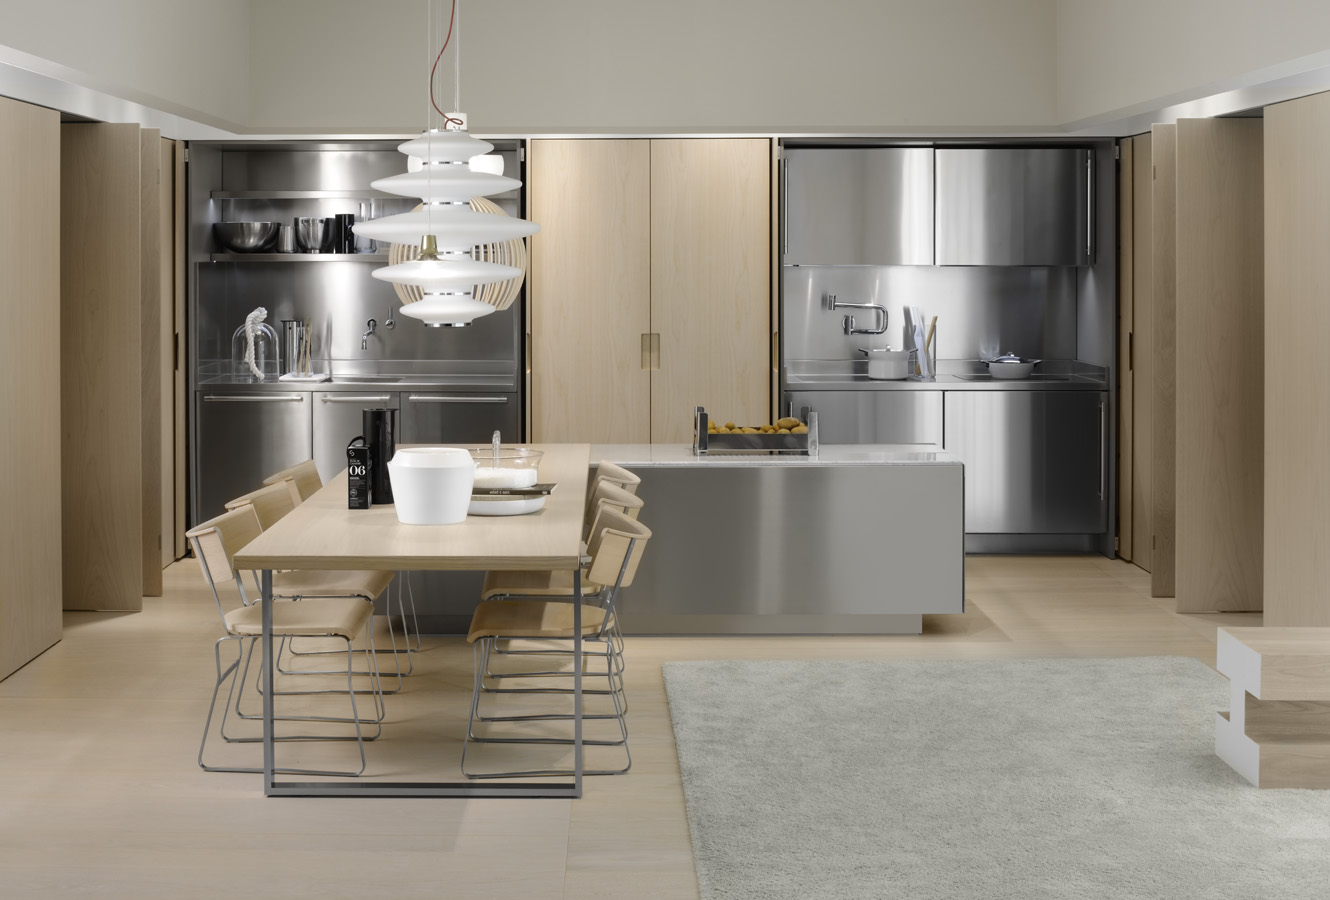 Modern italian kitchen design from arclinea - Cuisine designer italien ...